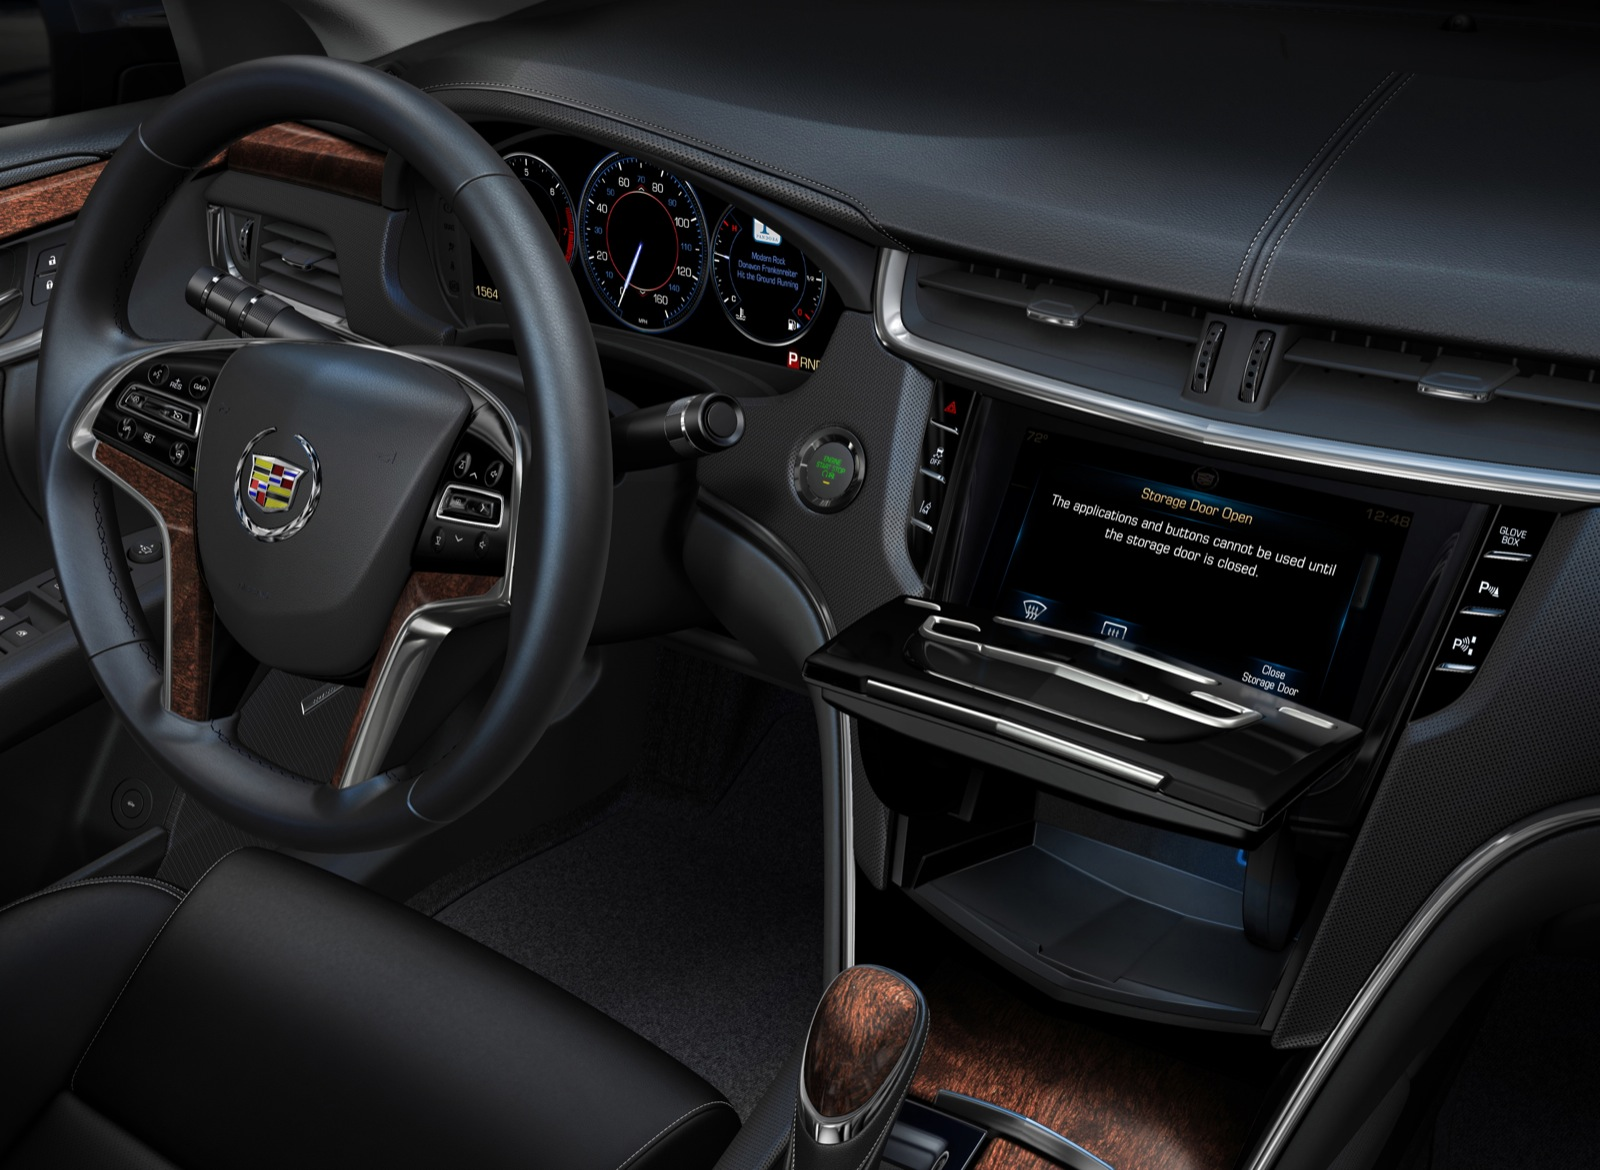 2013 Cadillac XTS To Debut CUE Touch-Screen Interface, Software Platform